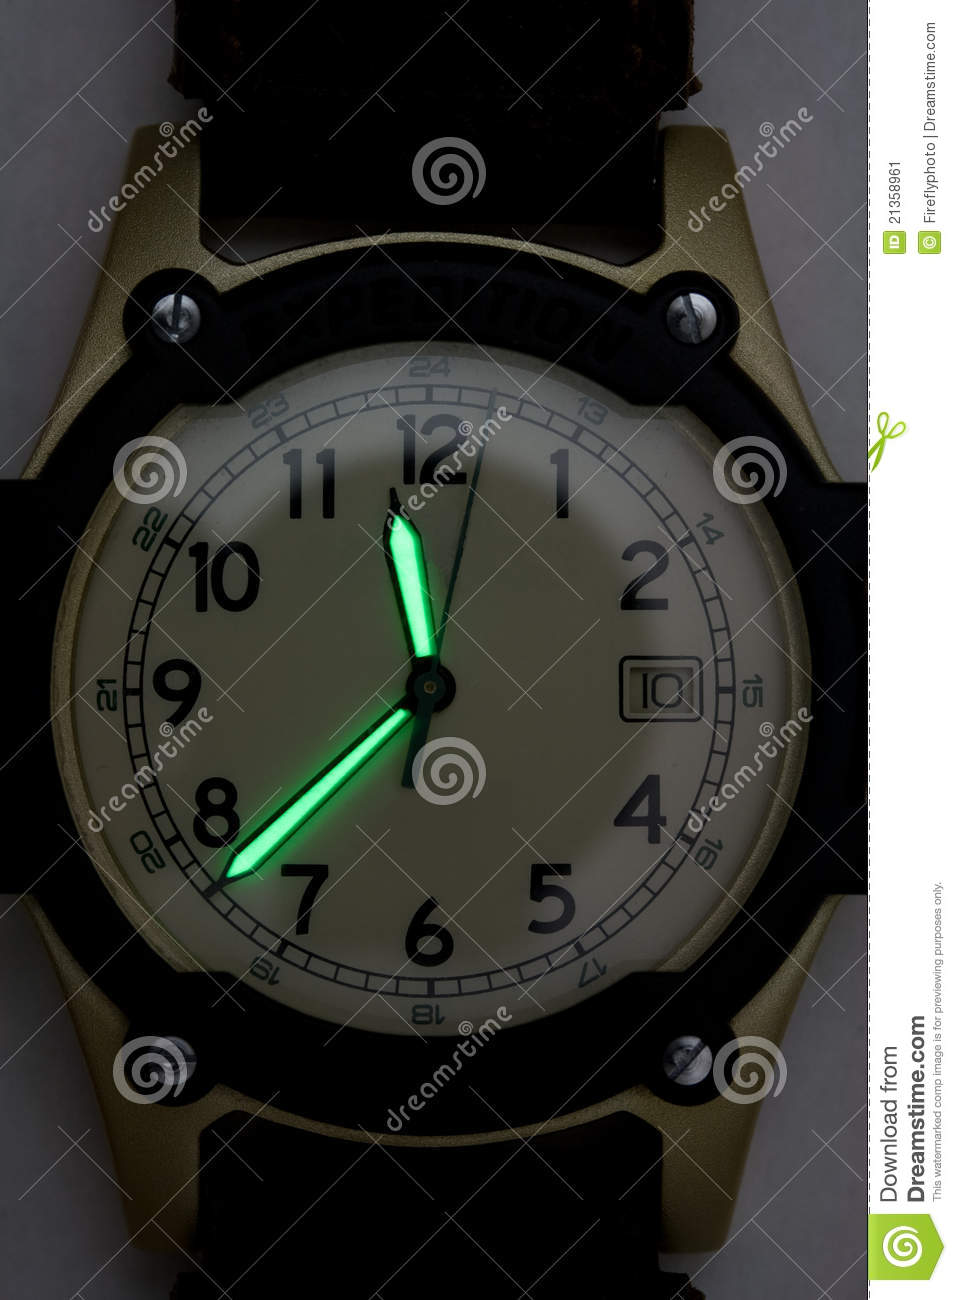 Luminescent hands on wrist watch stock image image 21358961 for Luminescence watches